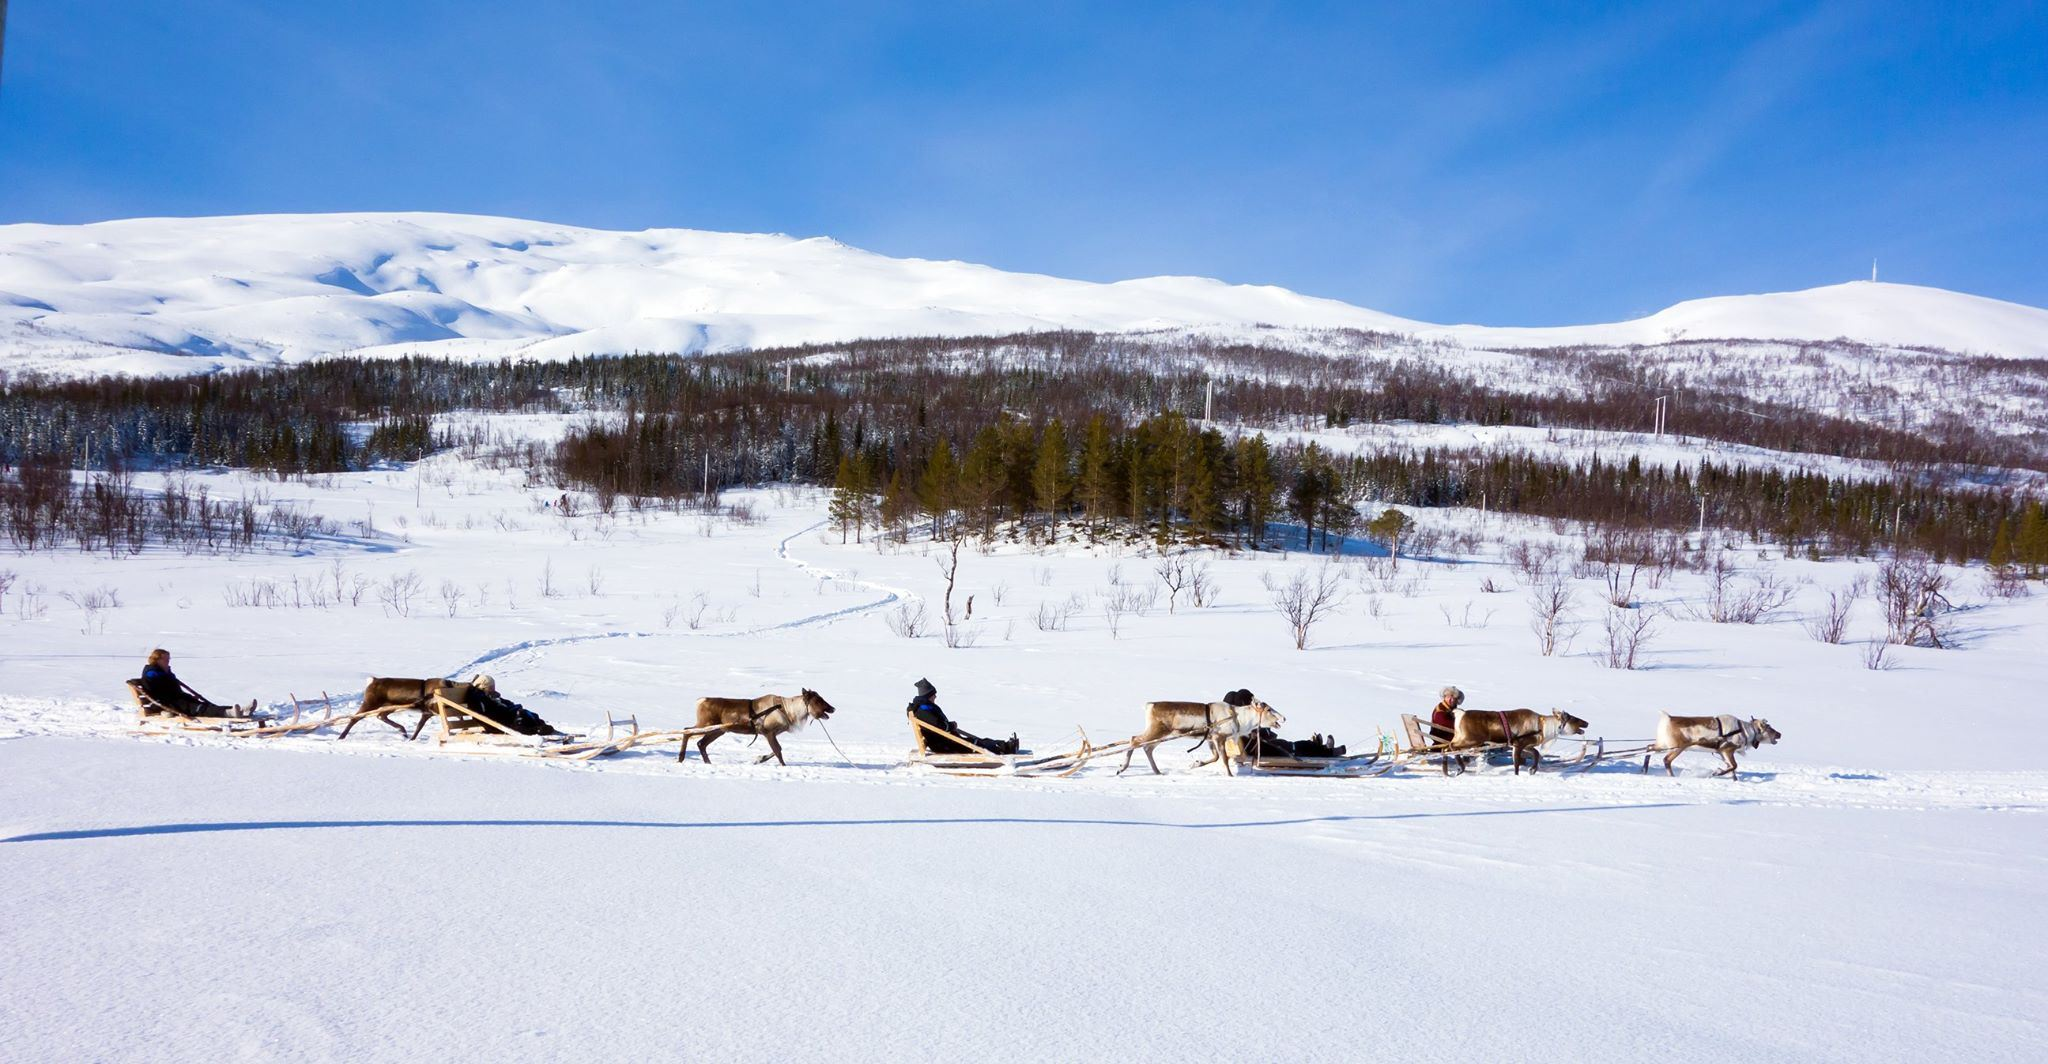 Reindeer Sledding with Sami Culture - Tromsø Lapland